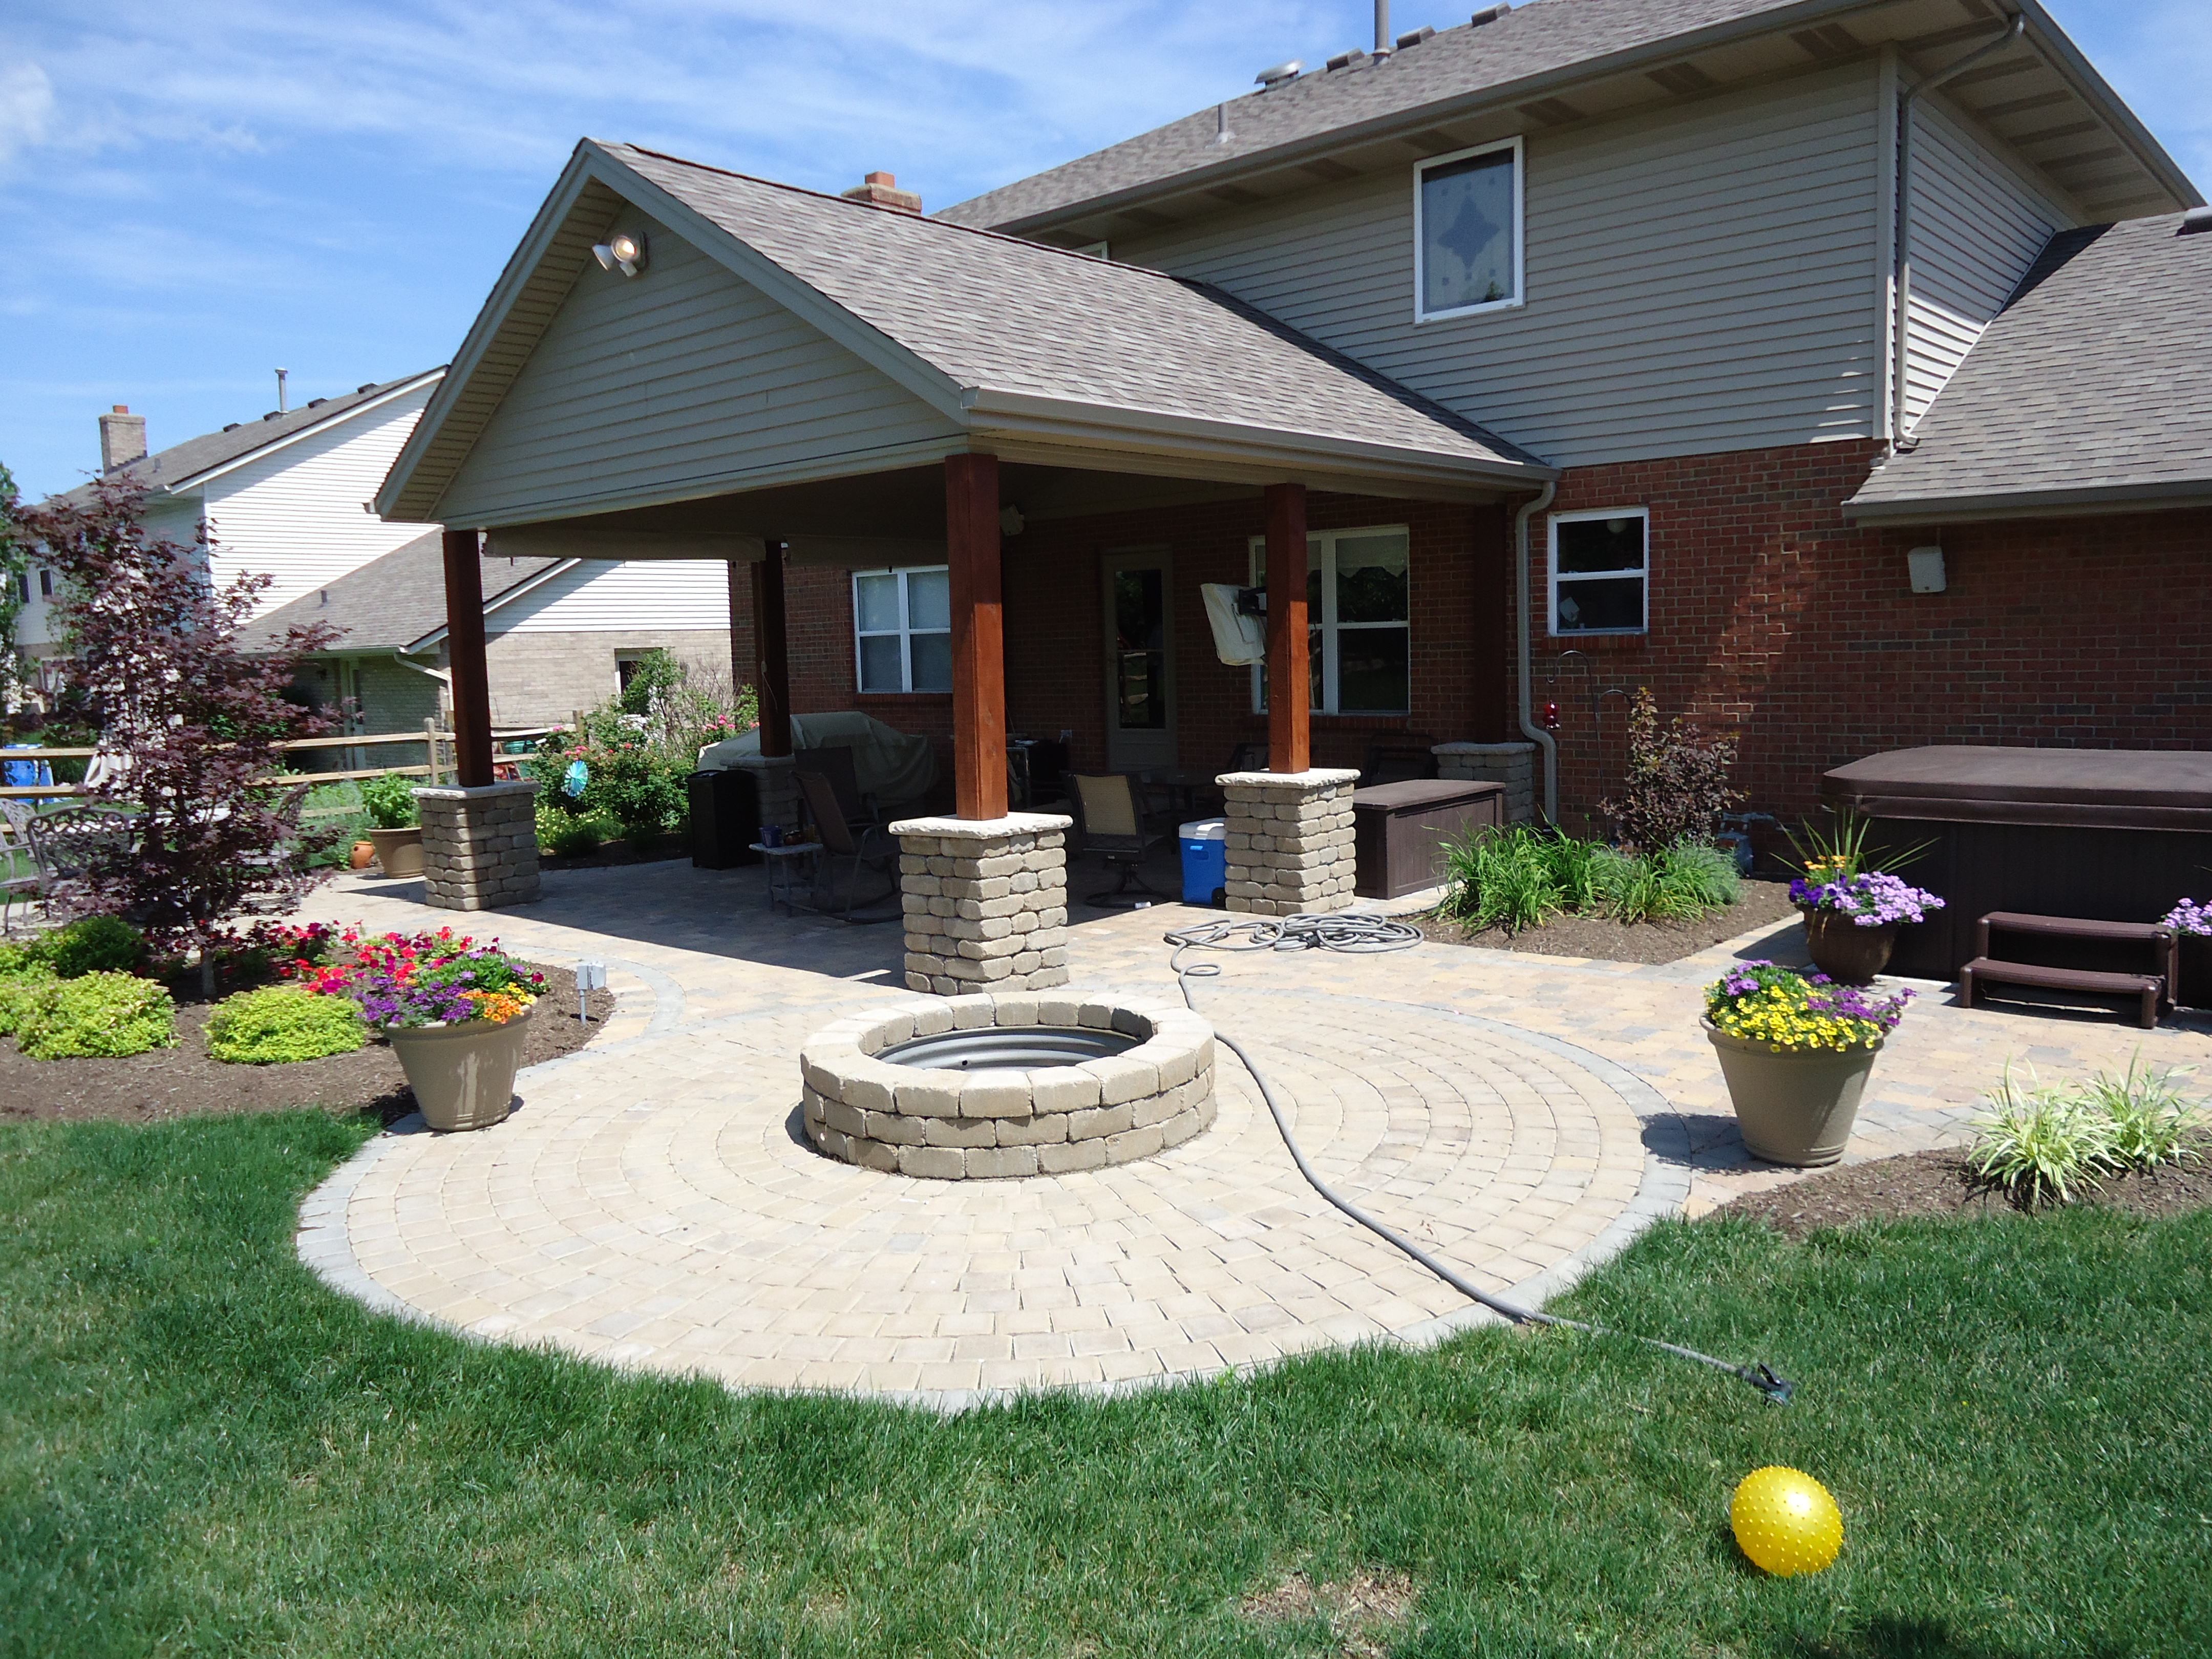 Landscaped Gardens Facility: Wilson Garden Center Inc